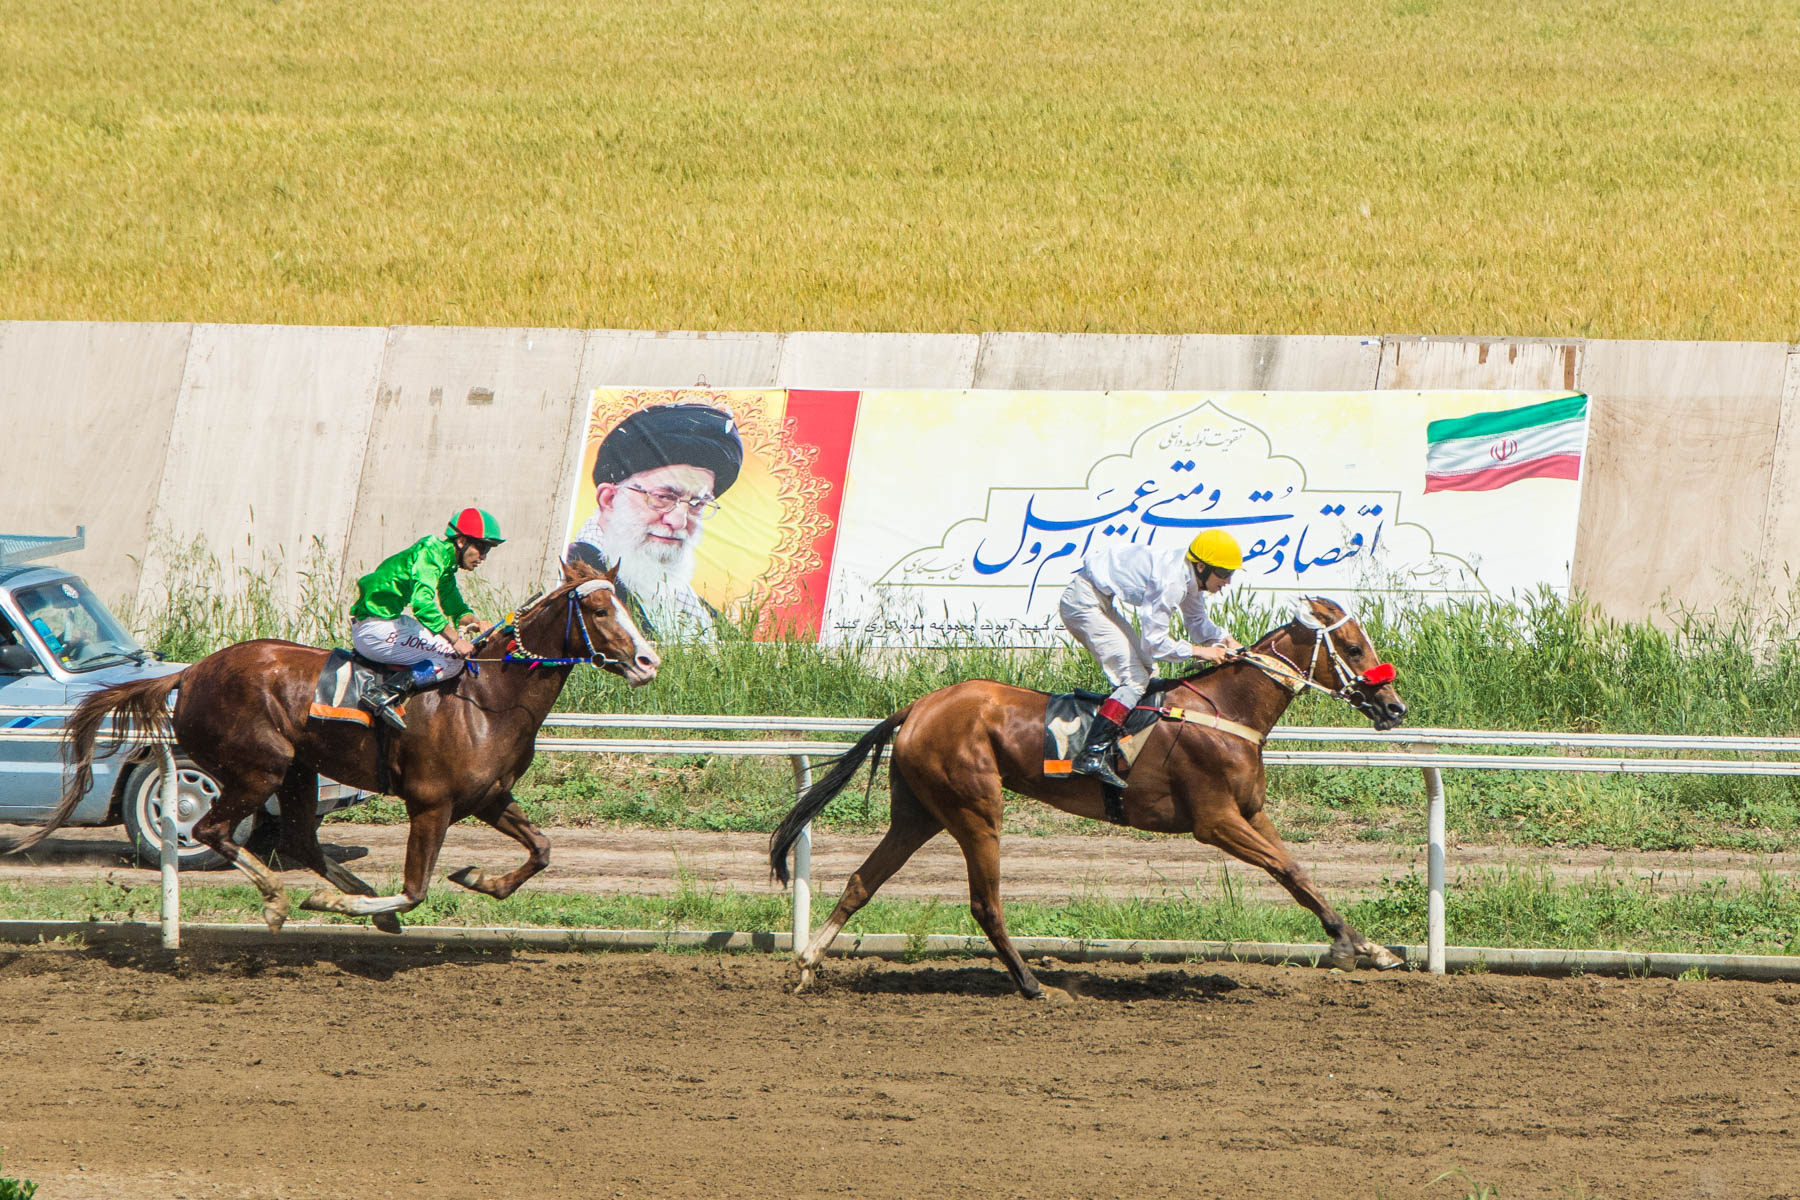 Riders finishing a race at the horse races in Gonbad-e Kavus, Iran.